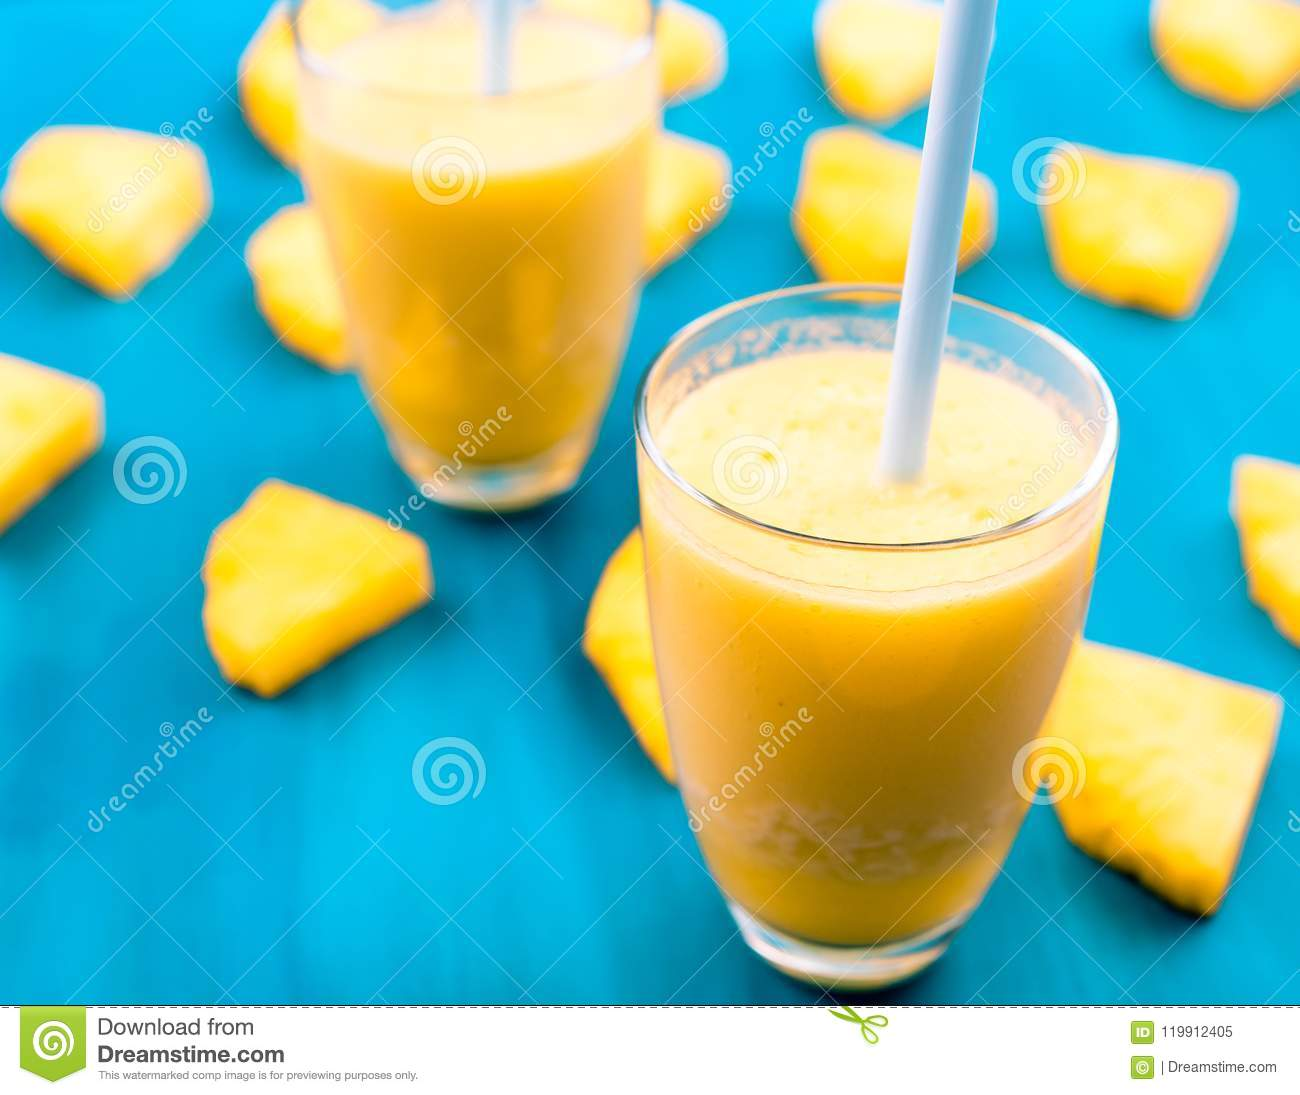 Pineapple smoothie with fresh pineapple on wooden blue table.